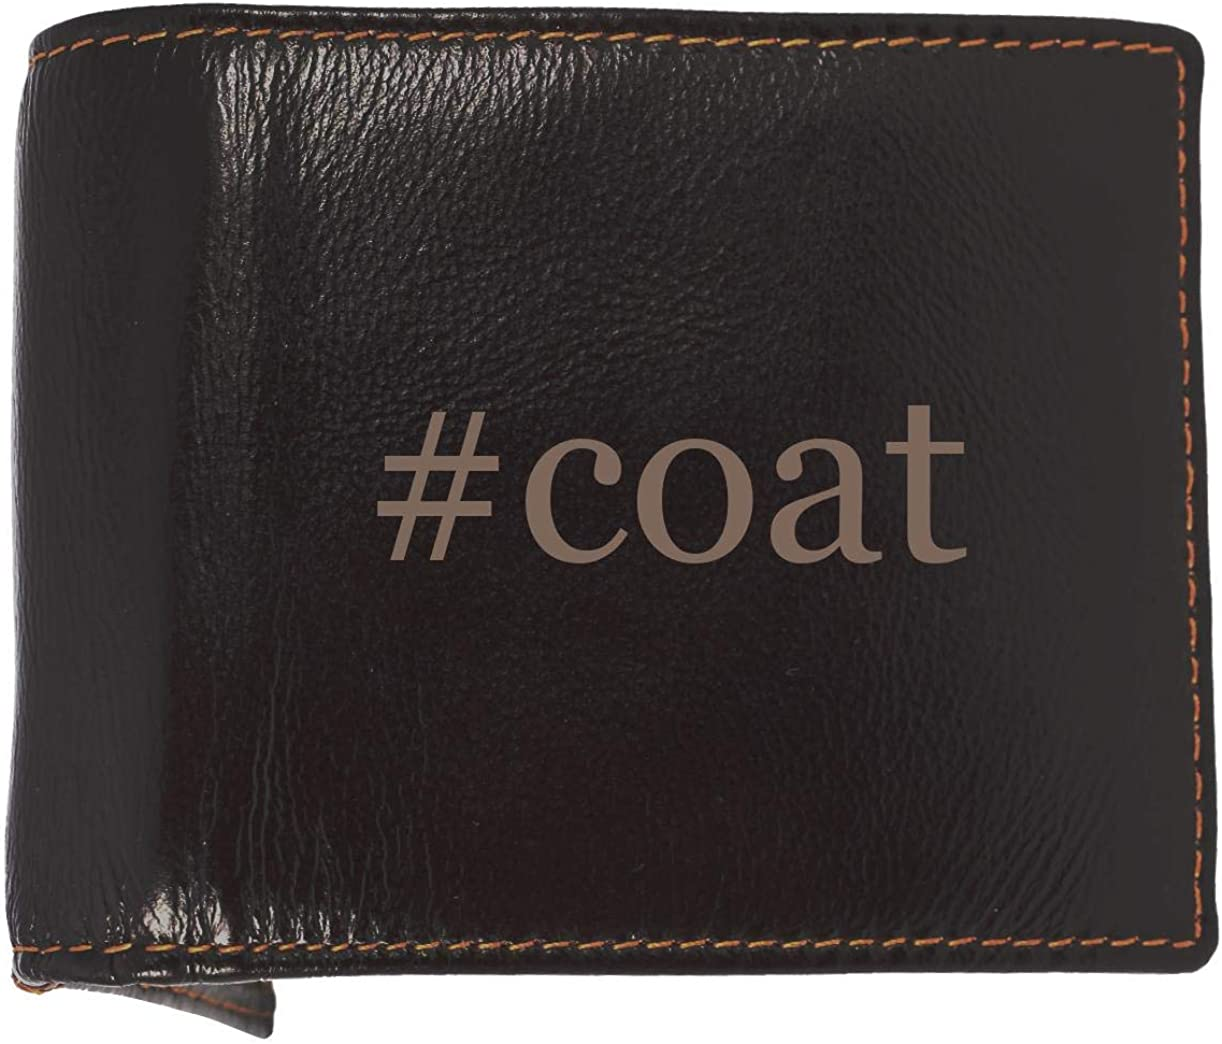 #coat - Soft Hashtag Cowhide Genuine Engraved Bifold Leather Wallet